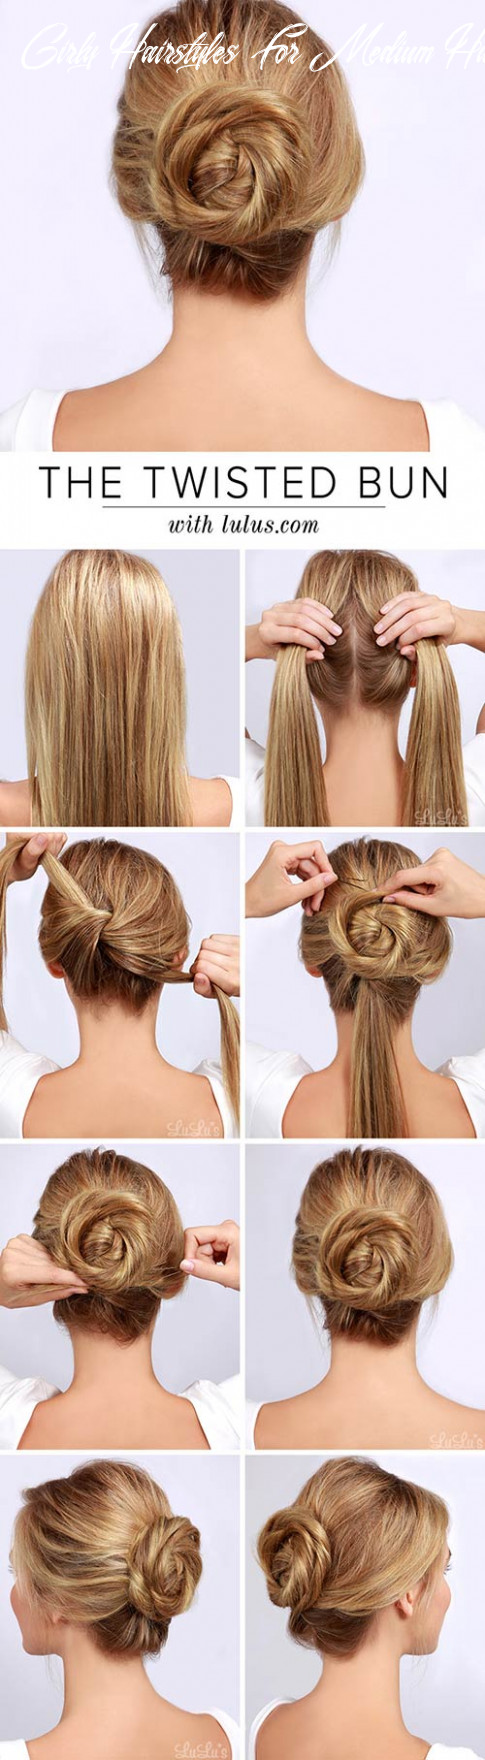 10 awesome hairstyles for girls with long hair girly hairstyles for medium hair